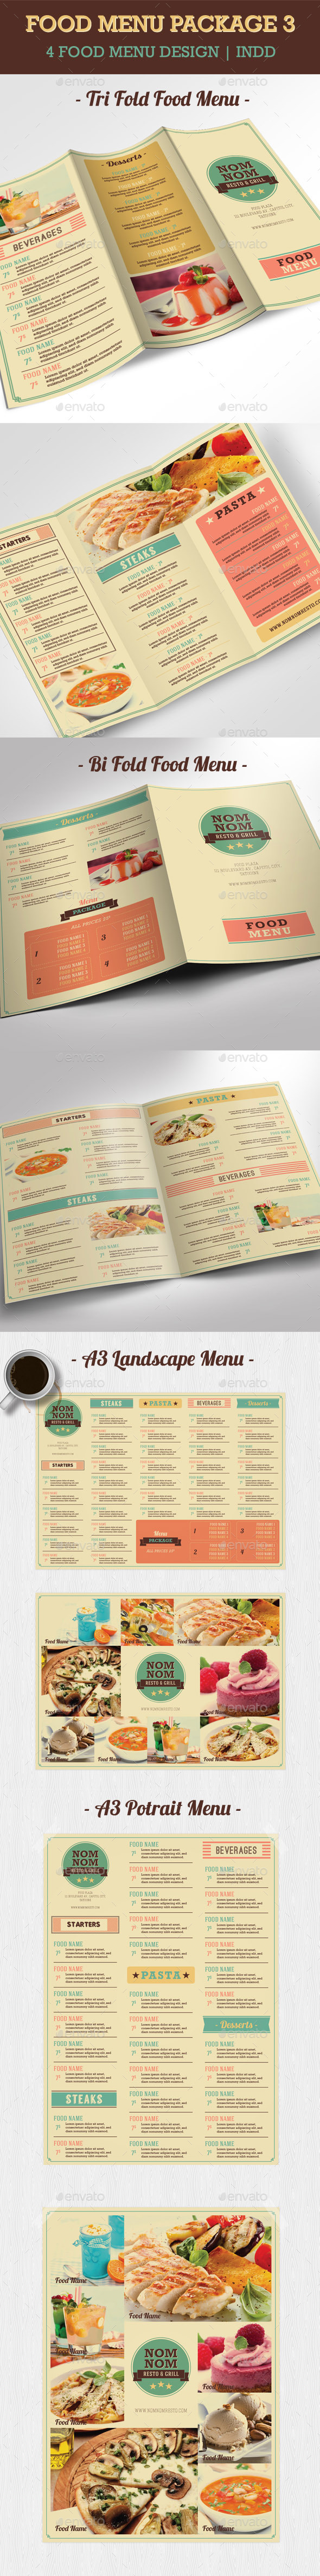 GraphicRiver Food Menu Package 3 10460268